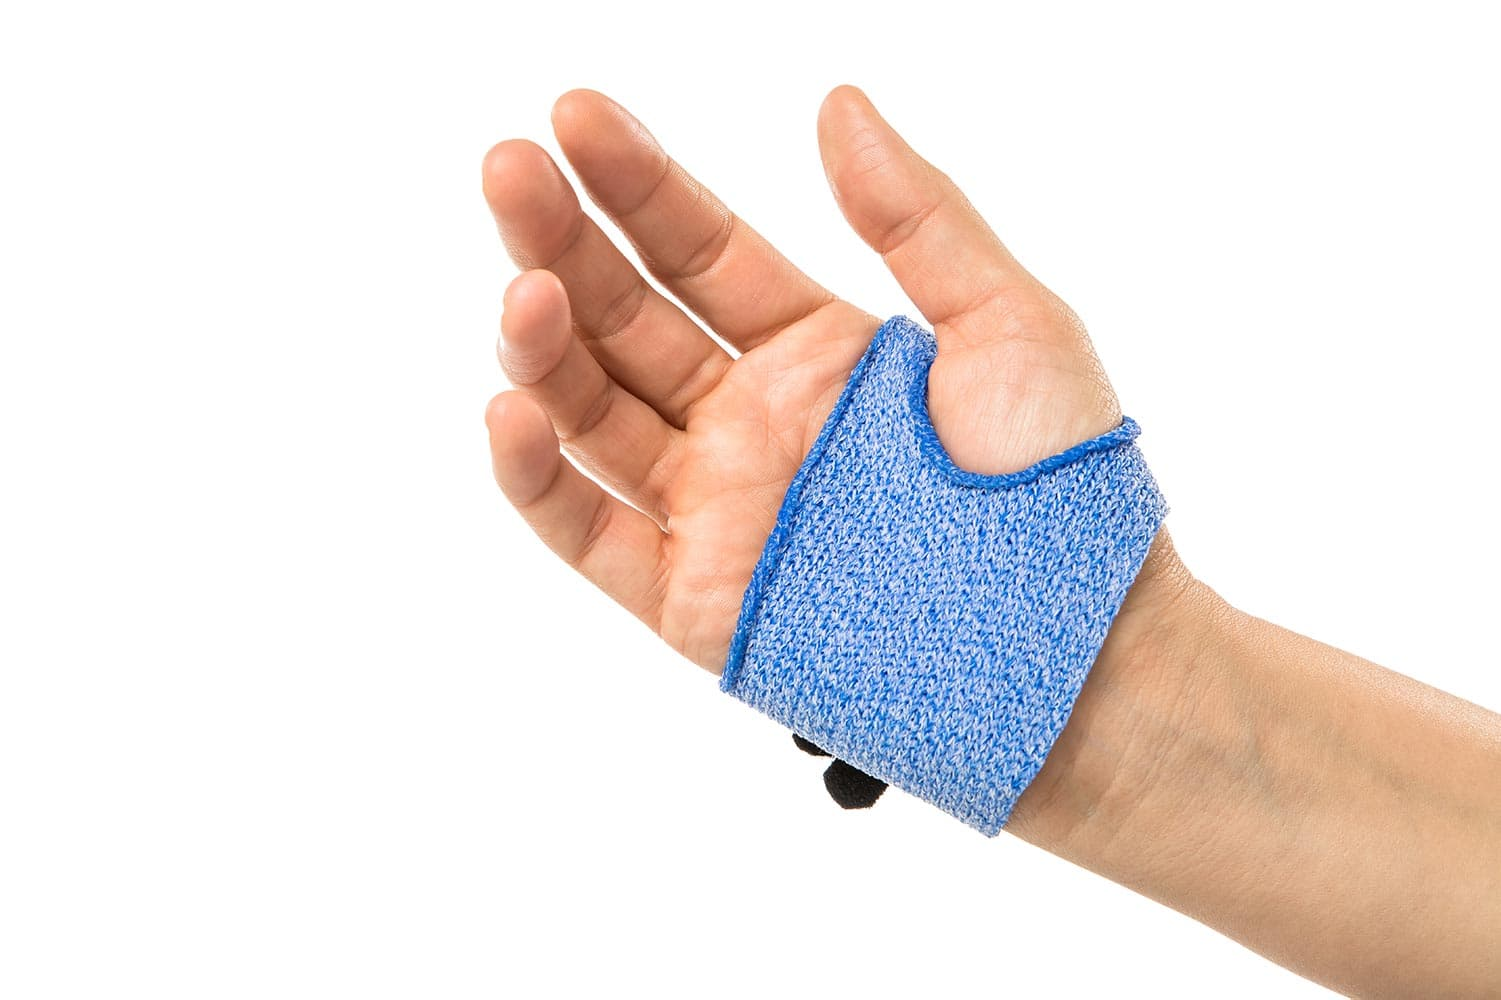 Palmar orthosis in Orficast More Blue.